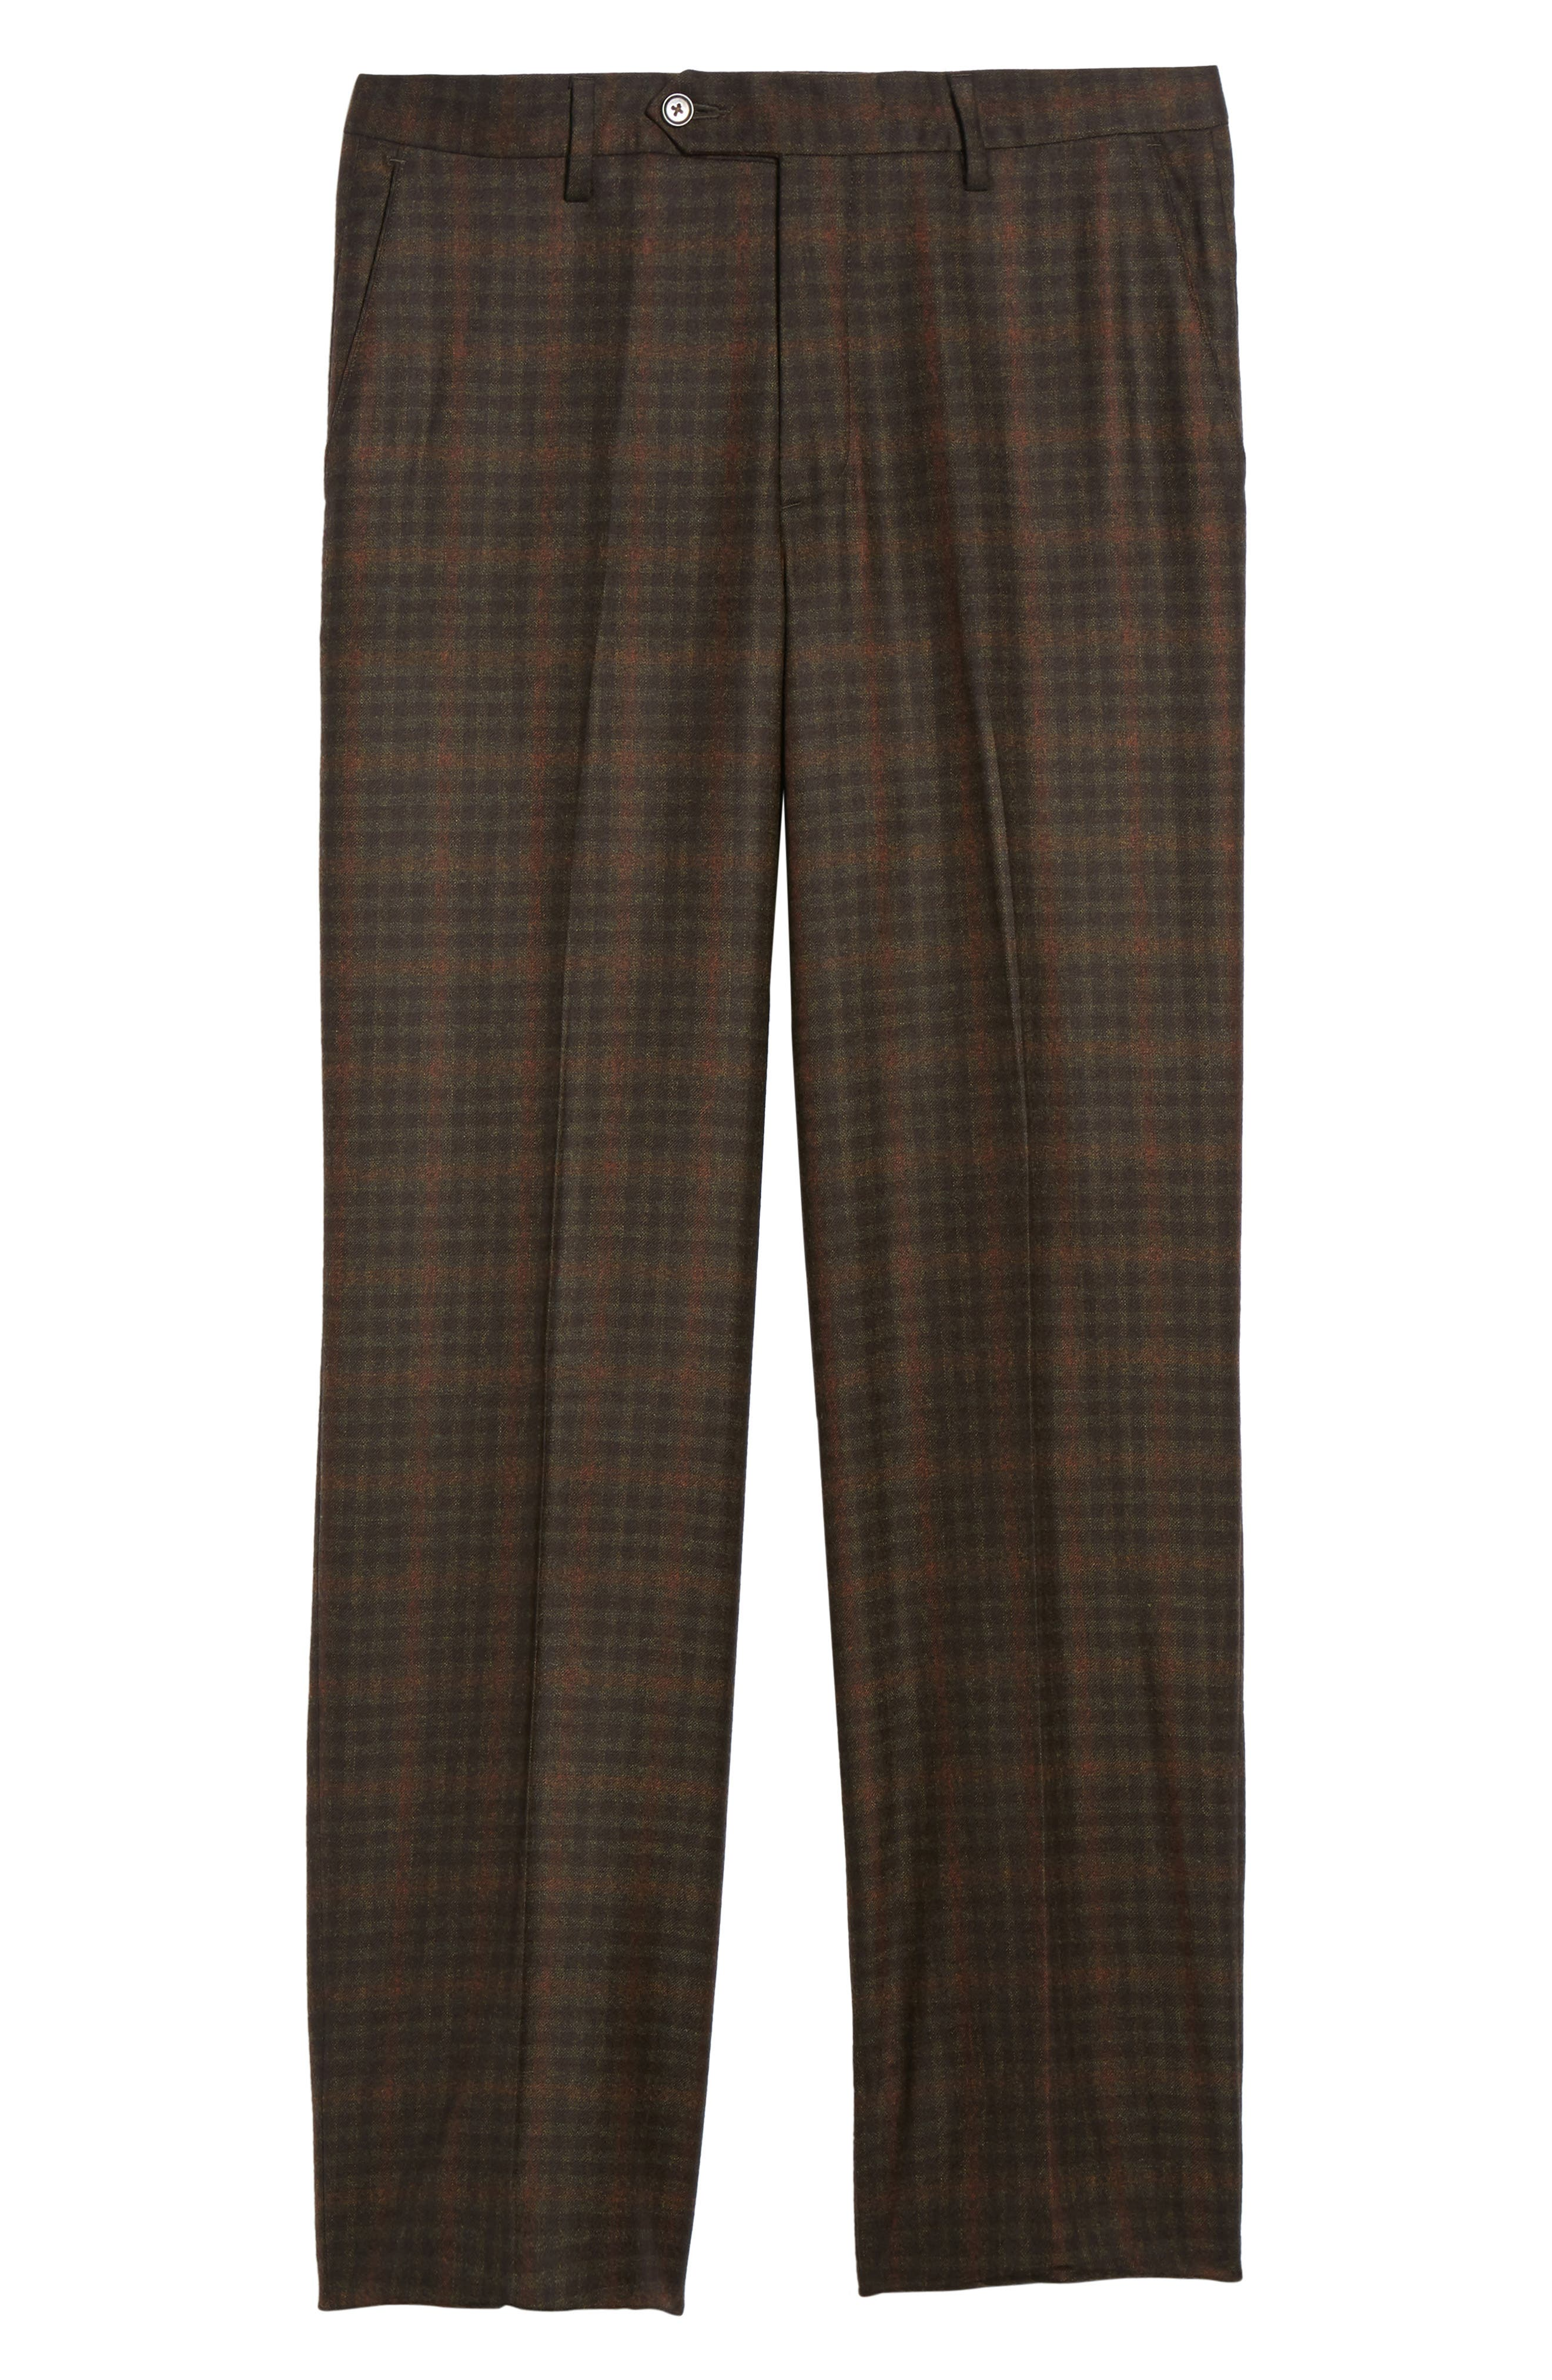 Flat Front Plaid Wool Trousers,                             Alternate thumbnail 6, color,                             200